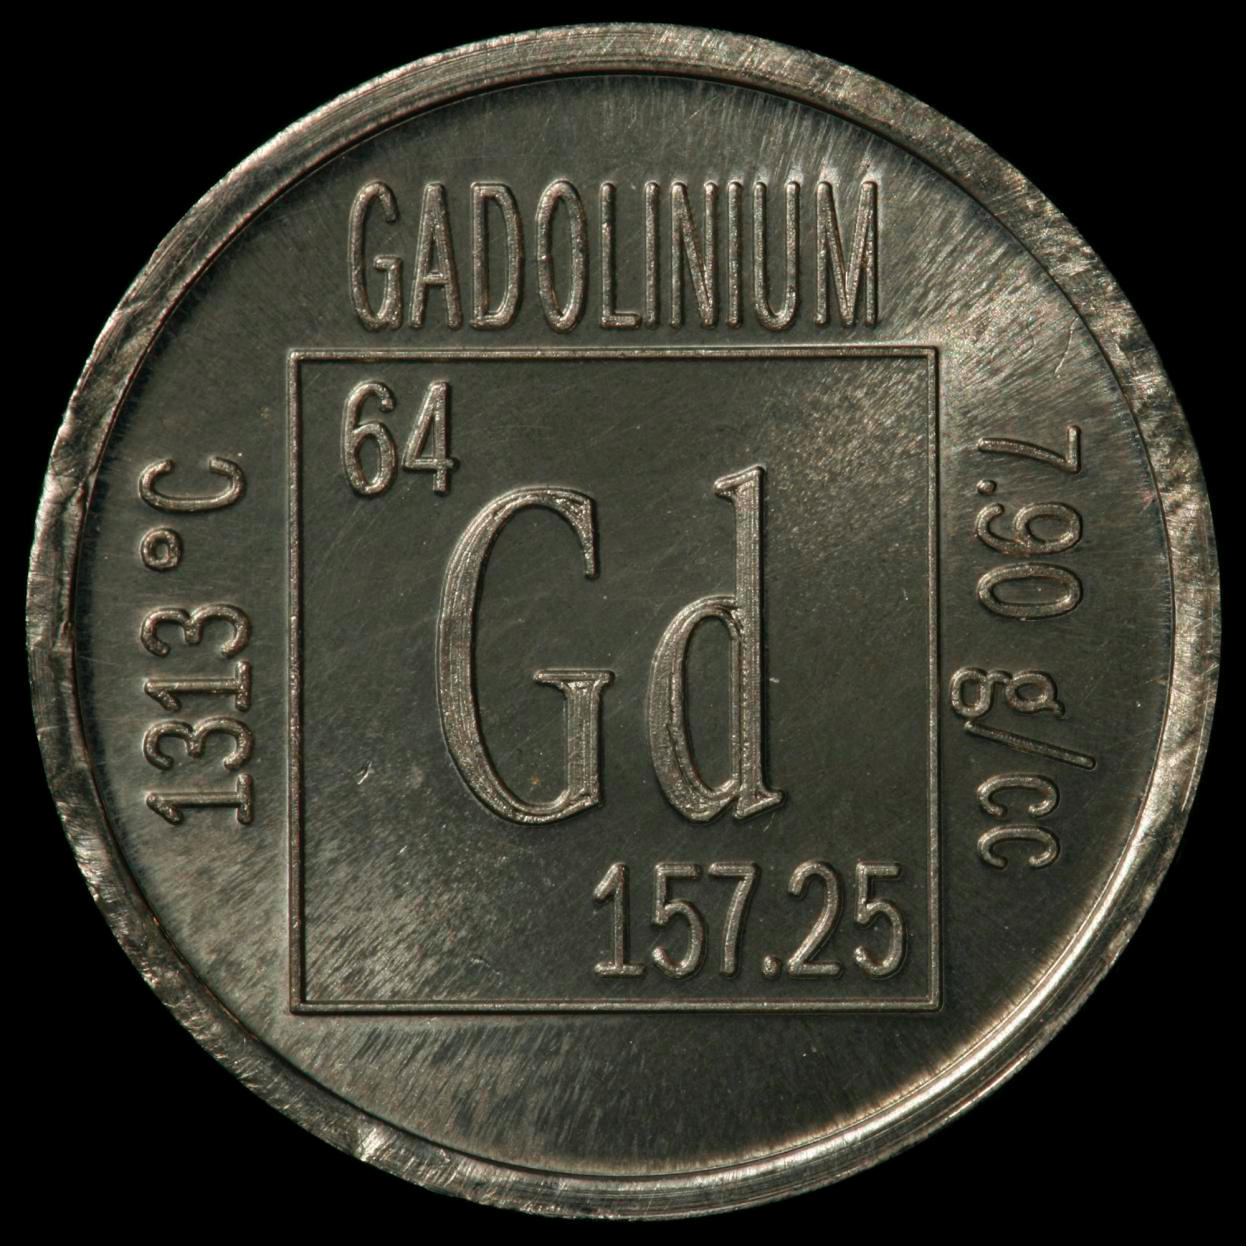 Facts pictures stories about the element gadolinium in the gadolinium element coin gamestrikefo Images